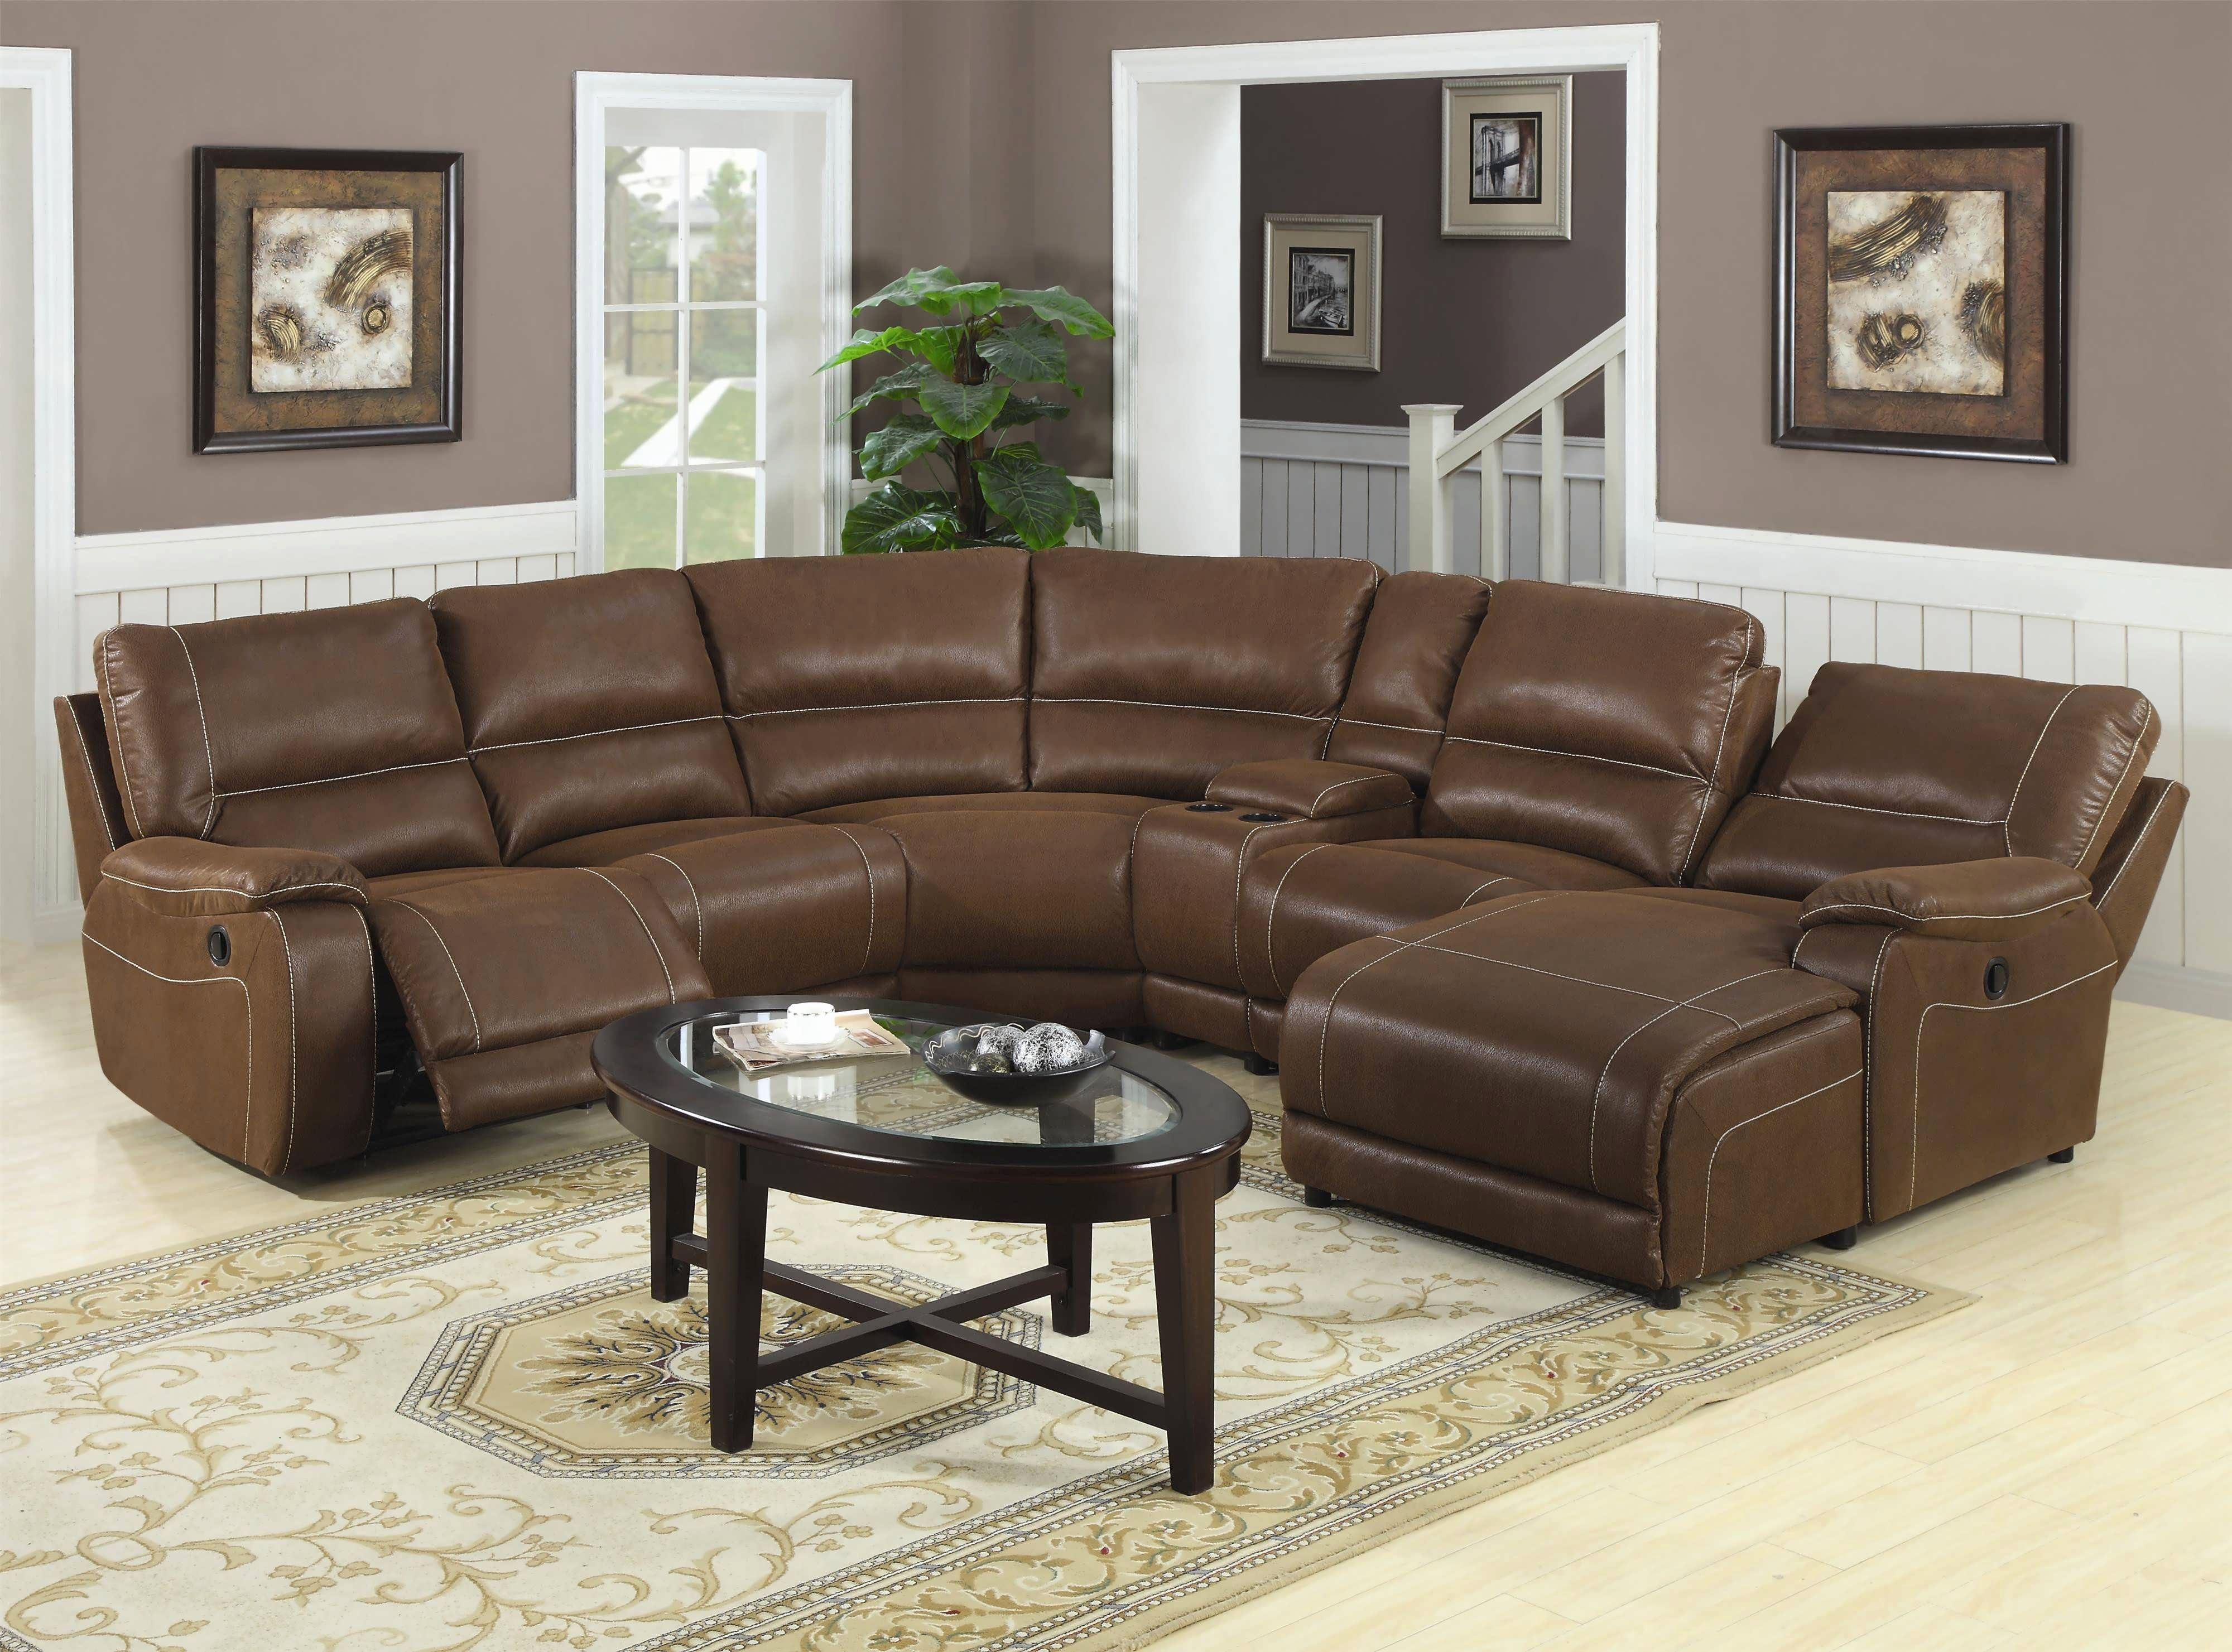 Beautiful Sectional Sofa With Recliners Photographs Furniture Gorgeous Sofas Chaise Lounge Brilliant